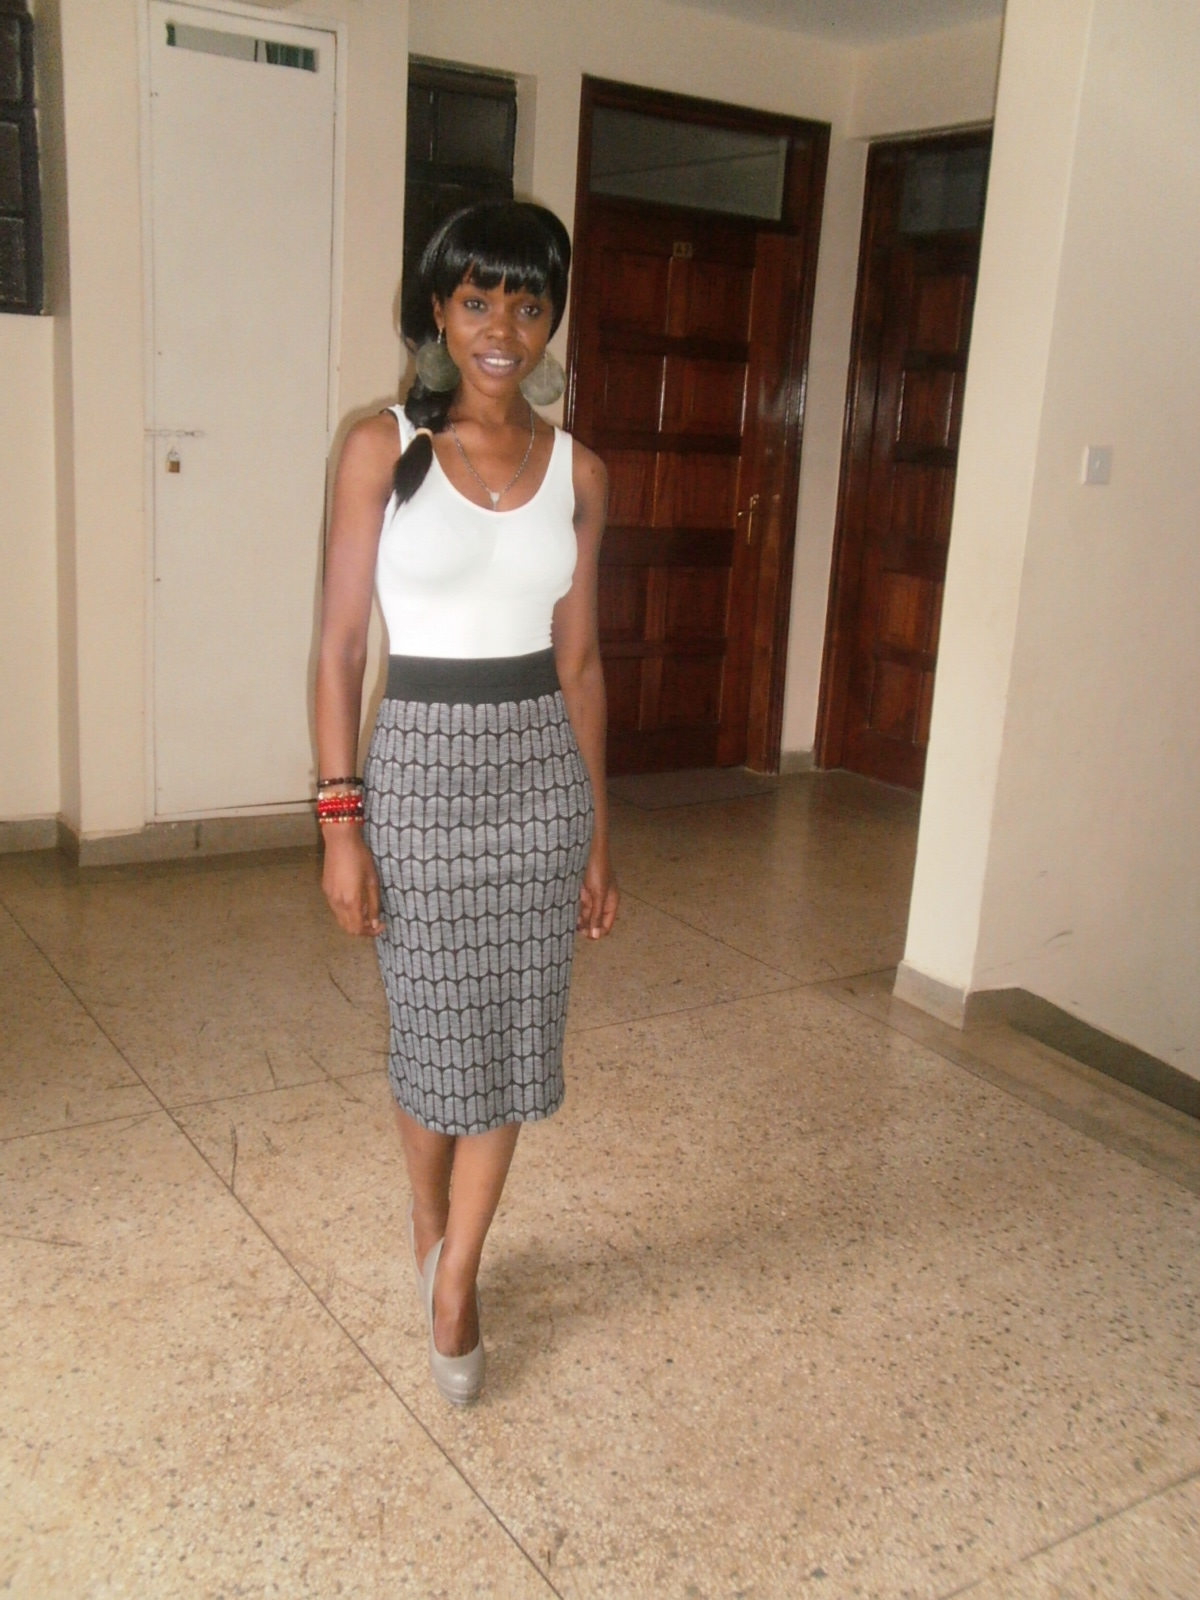 nyangi styles personal style interview barbara isiaho my outfit for the night is a little girly but glamorous a fancy skirt a simple flattering vest and heels i like this outfit because it brings out all